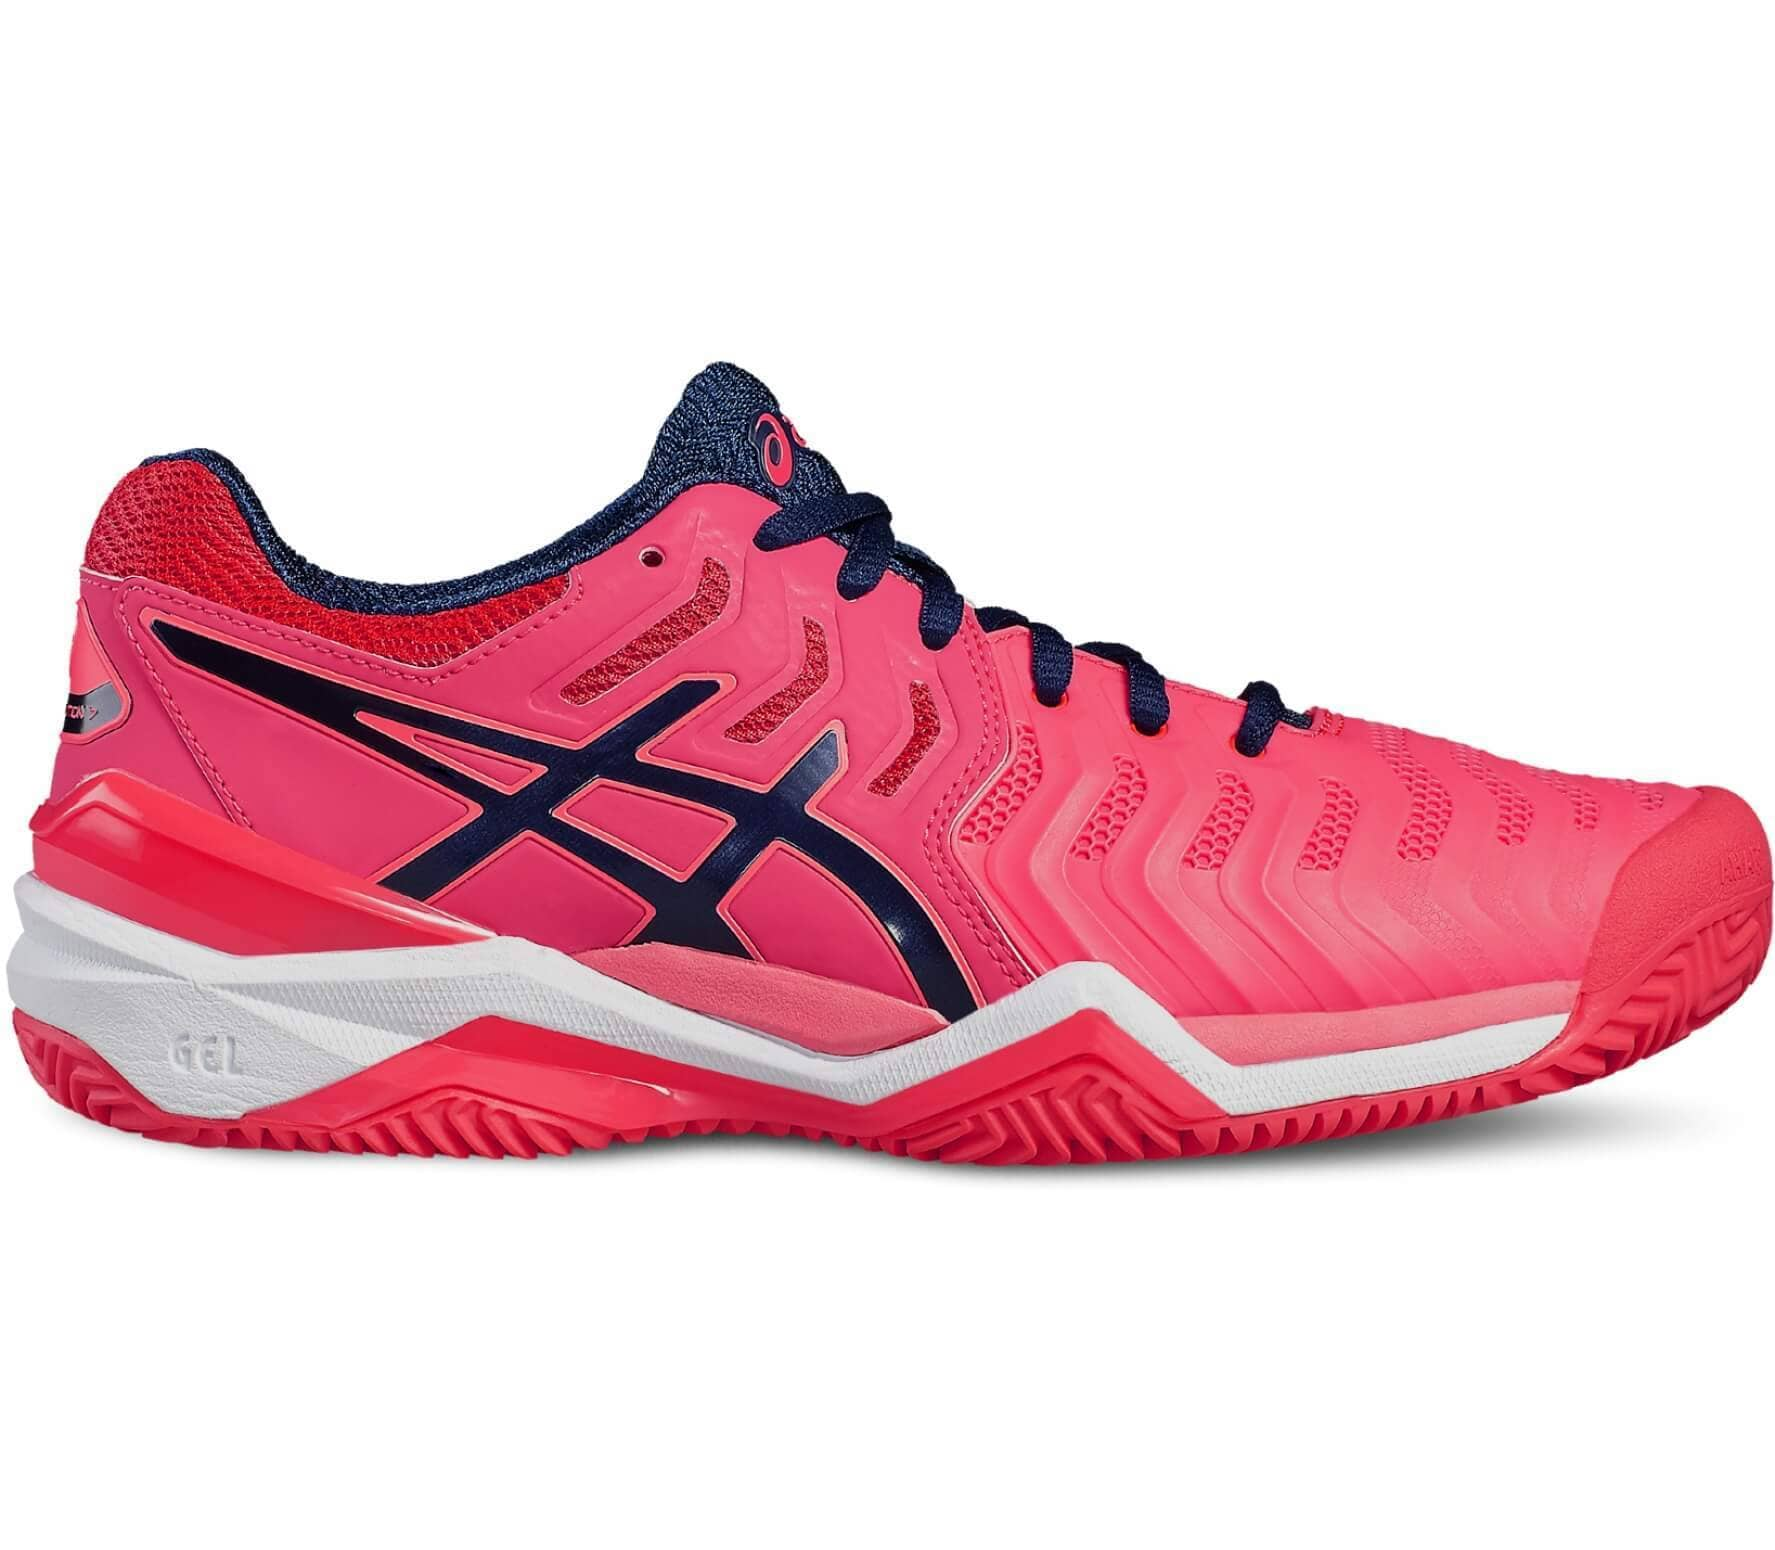 watch 5fef5 7c0bf Asics - Gel-Resolution 7 Clay Femmes Chaussure de tennis (rose bleu)